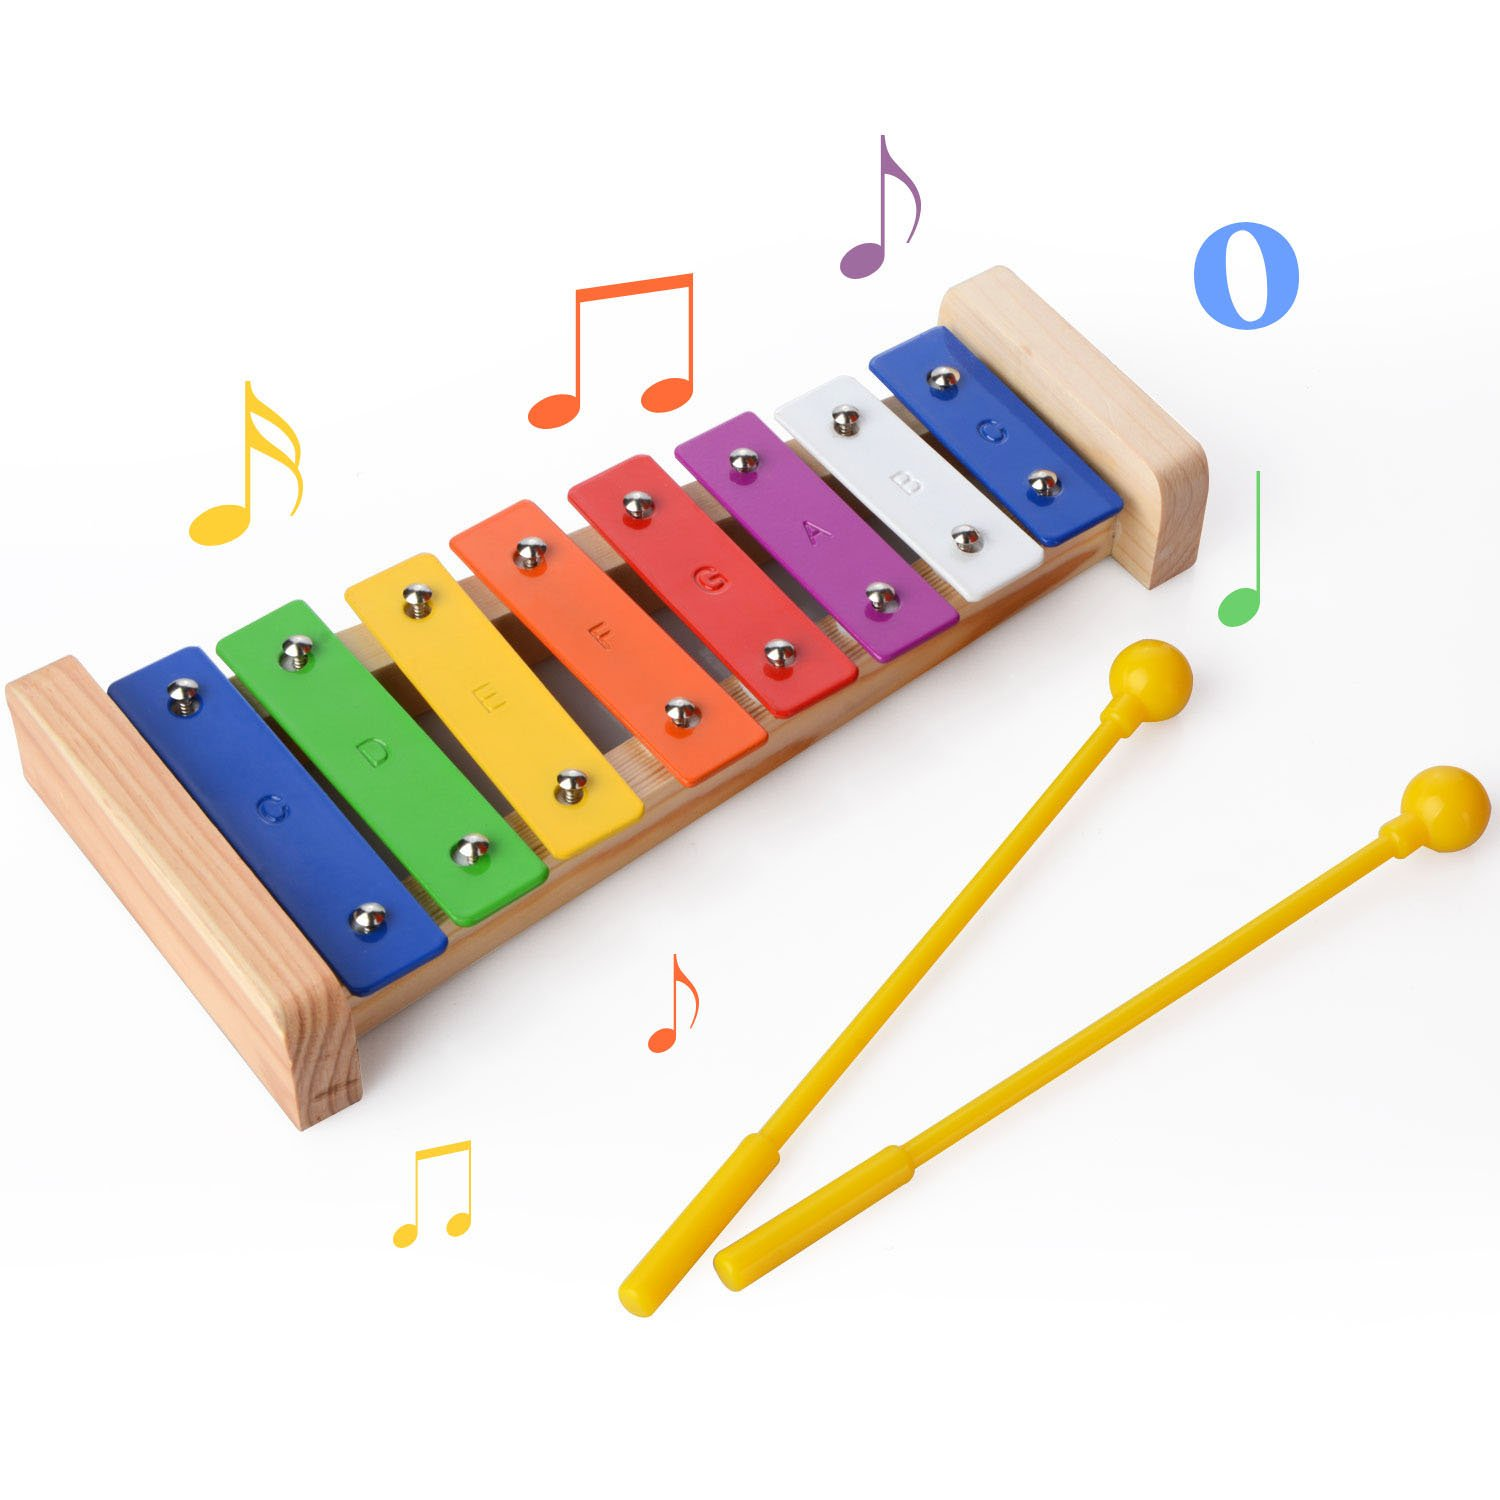 Percussion Set for Kids of All Ages MUITOBOM 20 Pcs Toddler /& Baby Musical Instruments Set Percussion Toy Fun Toddlers Toys Wooden Xylophone Glockenspiel Toy Rhythm Band Set